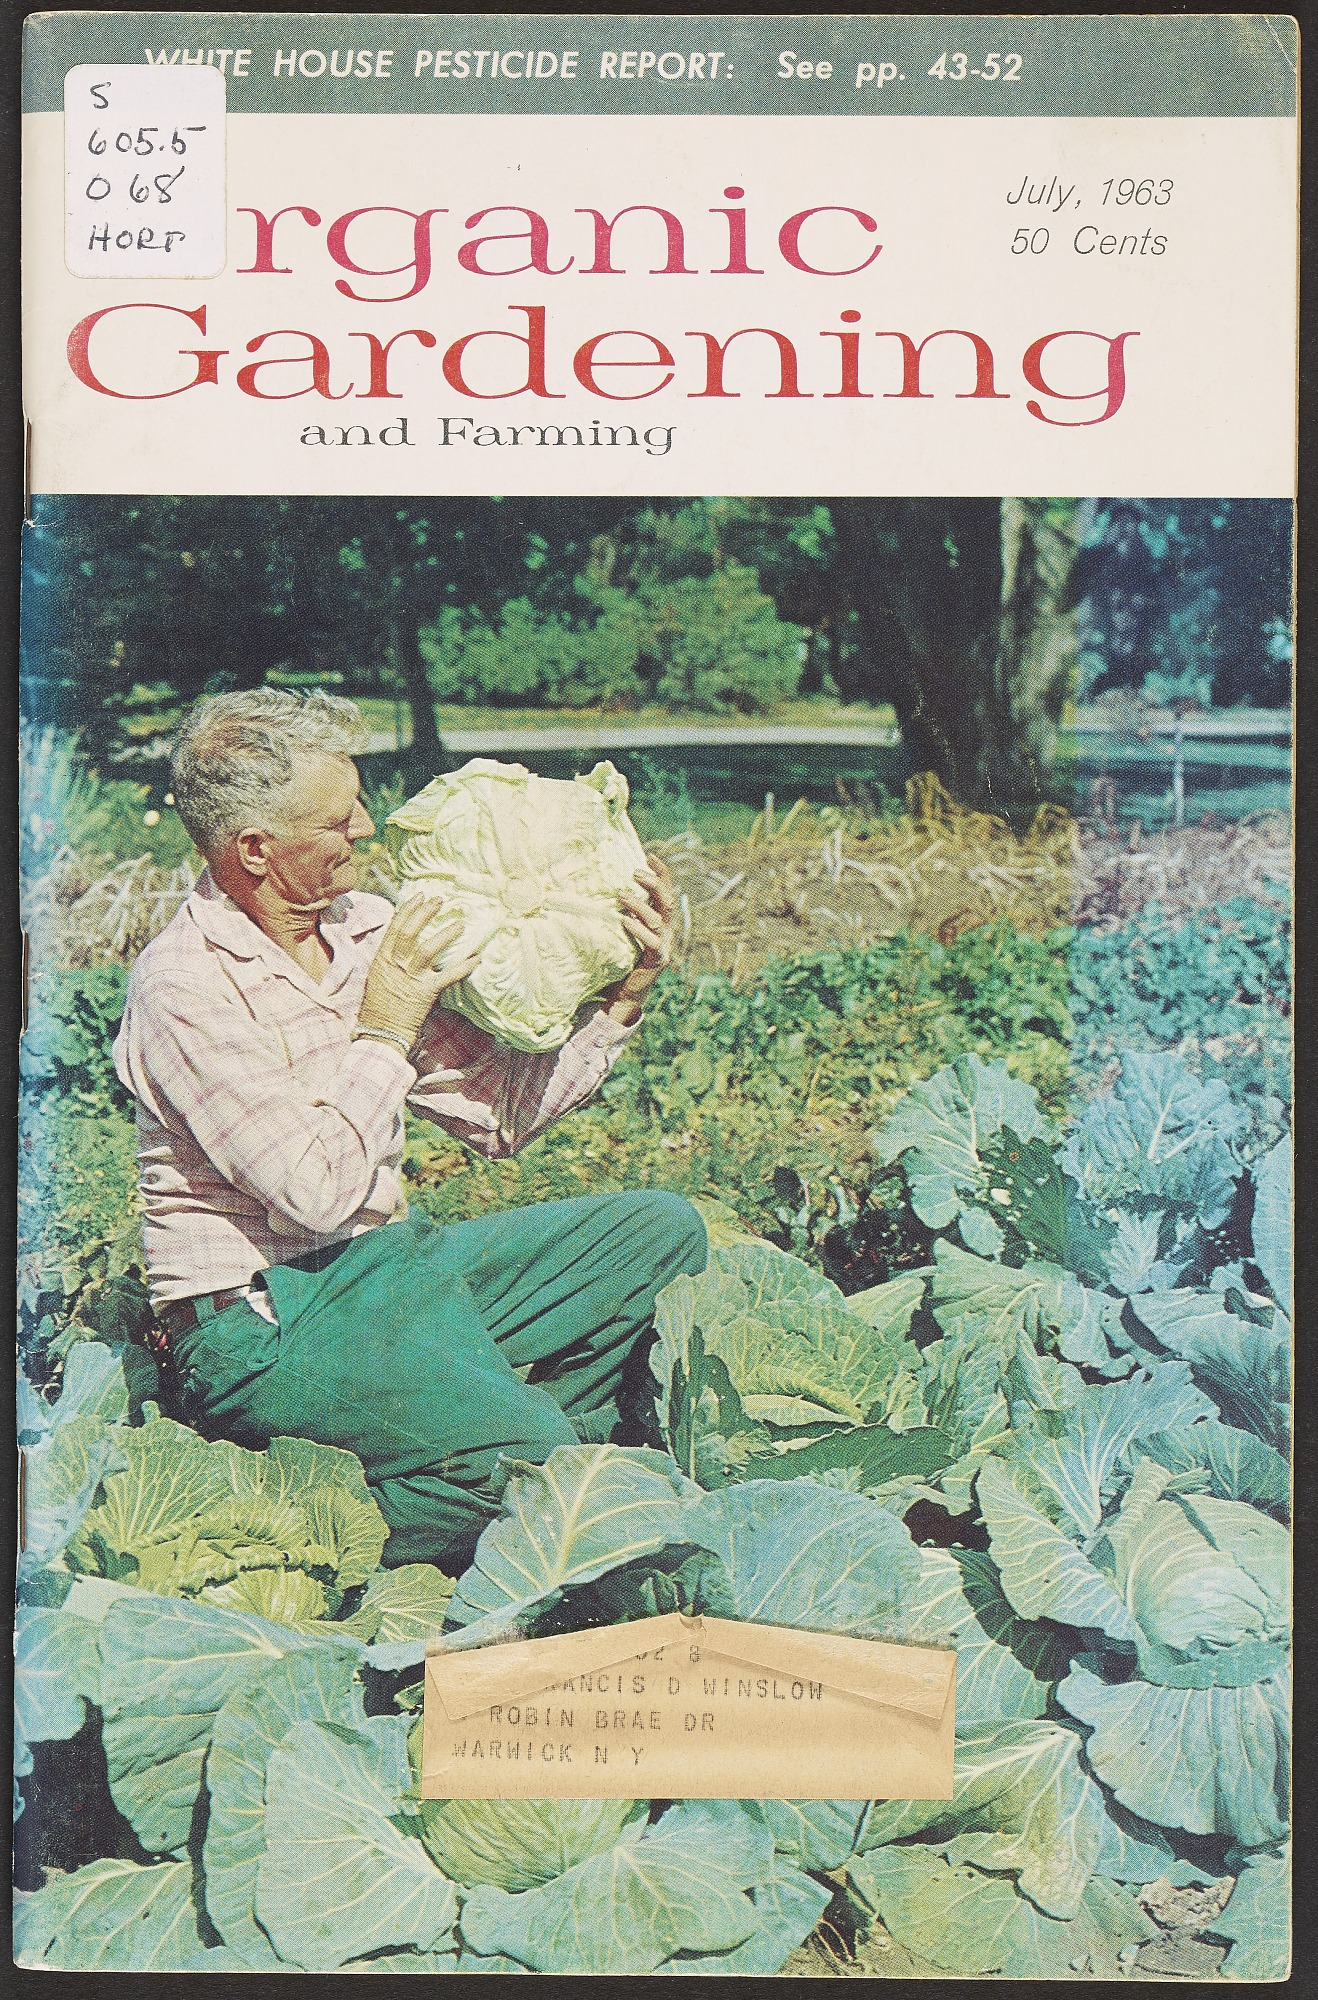 Organic Gardening and Farming, July 1963